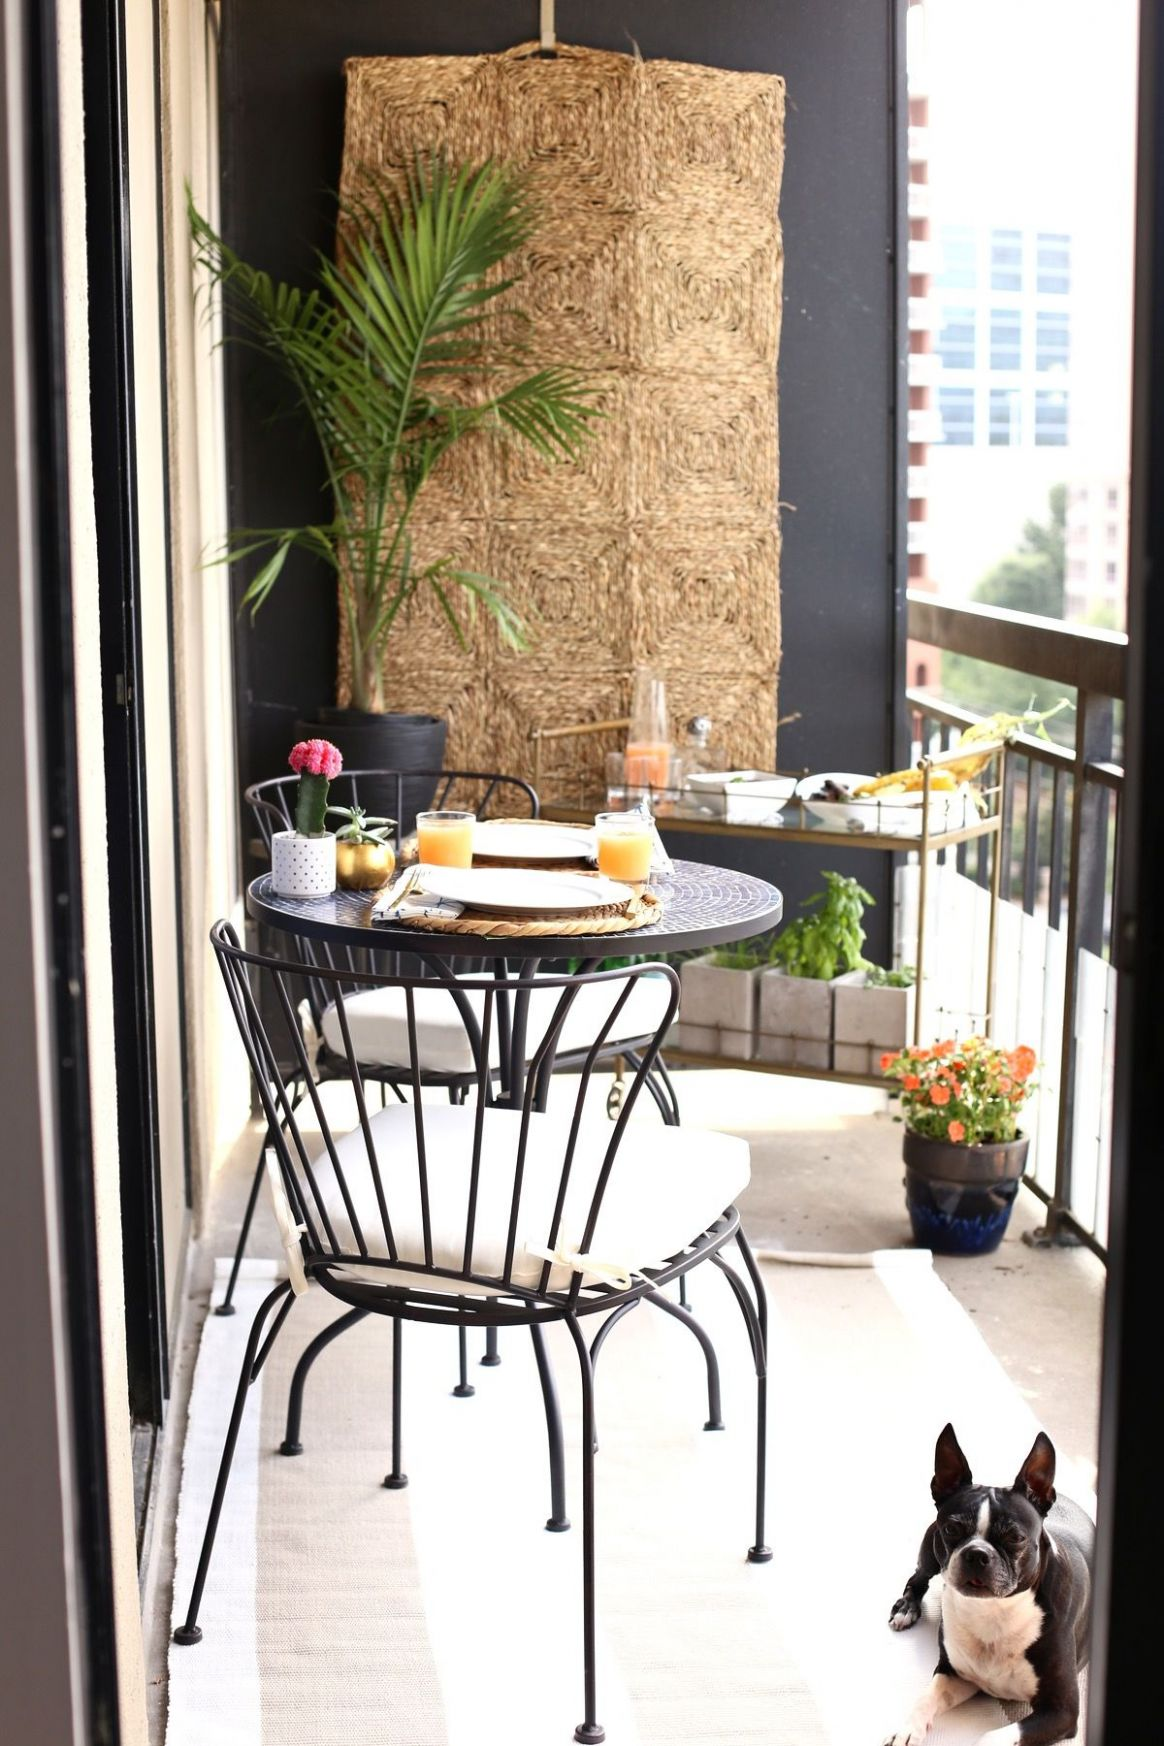 High Rise Patio Ideas (With images) | Small balcony design, Small ...